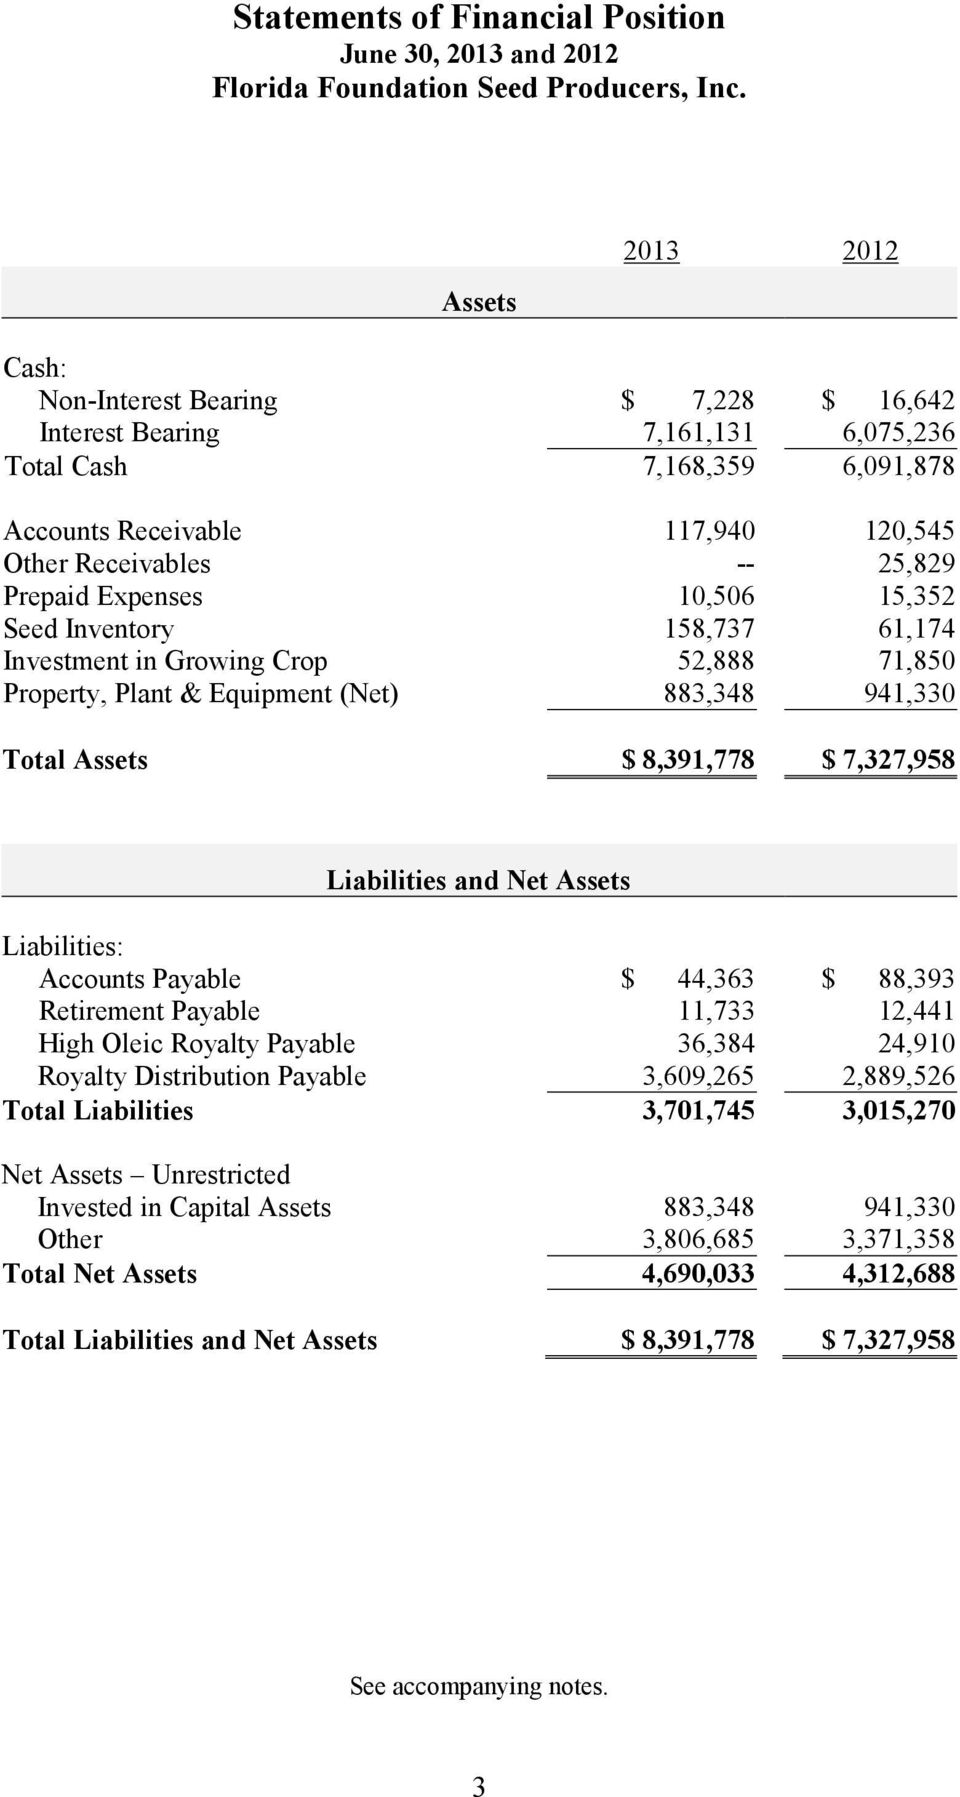 8,391,778 $ 7,327,958 Liabilities and Net Assets Liabilities: Accounts Payable $ 44,363 $ 88,393 Retirement Payable 11,733 12,441 High Oleic Royalty Payable 36,384 24,910 Royalty Distribution Payable